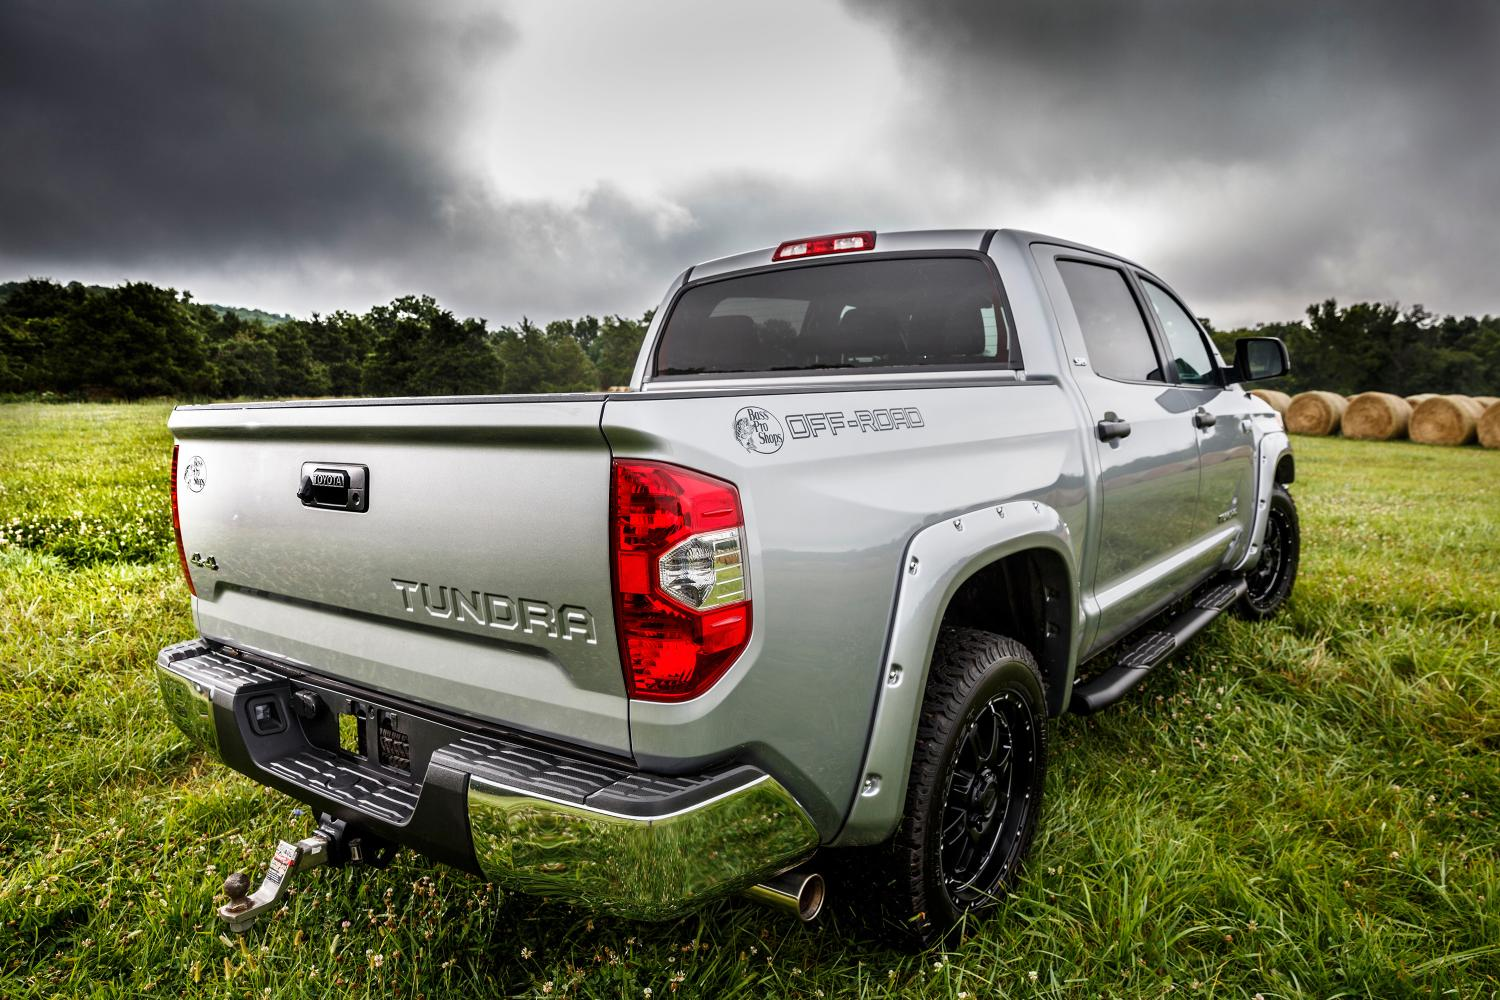 2015 Toyota Tundra Bass Pro Shops Off-Road Edition Breaks Cover